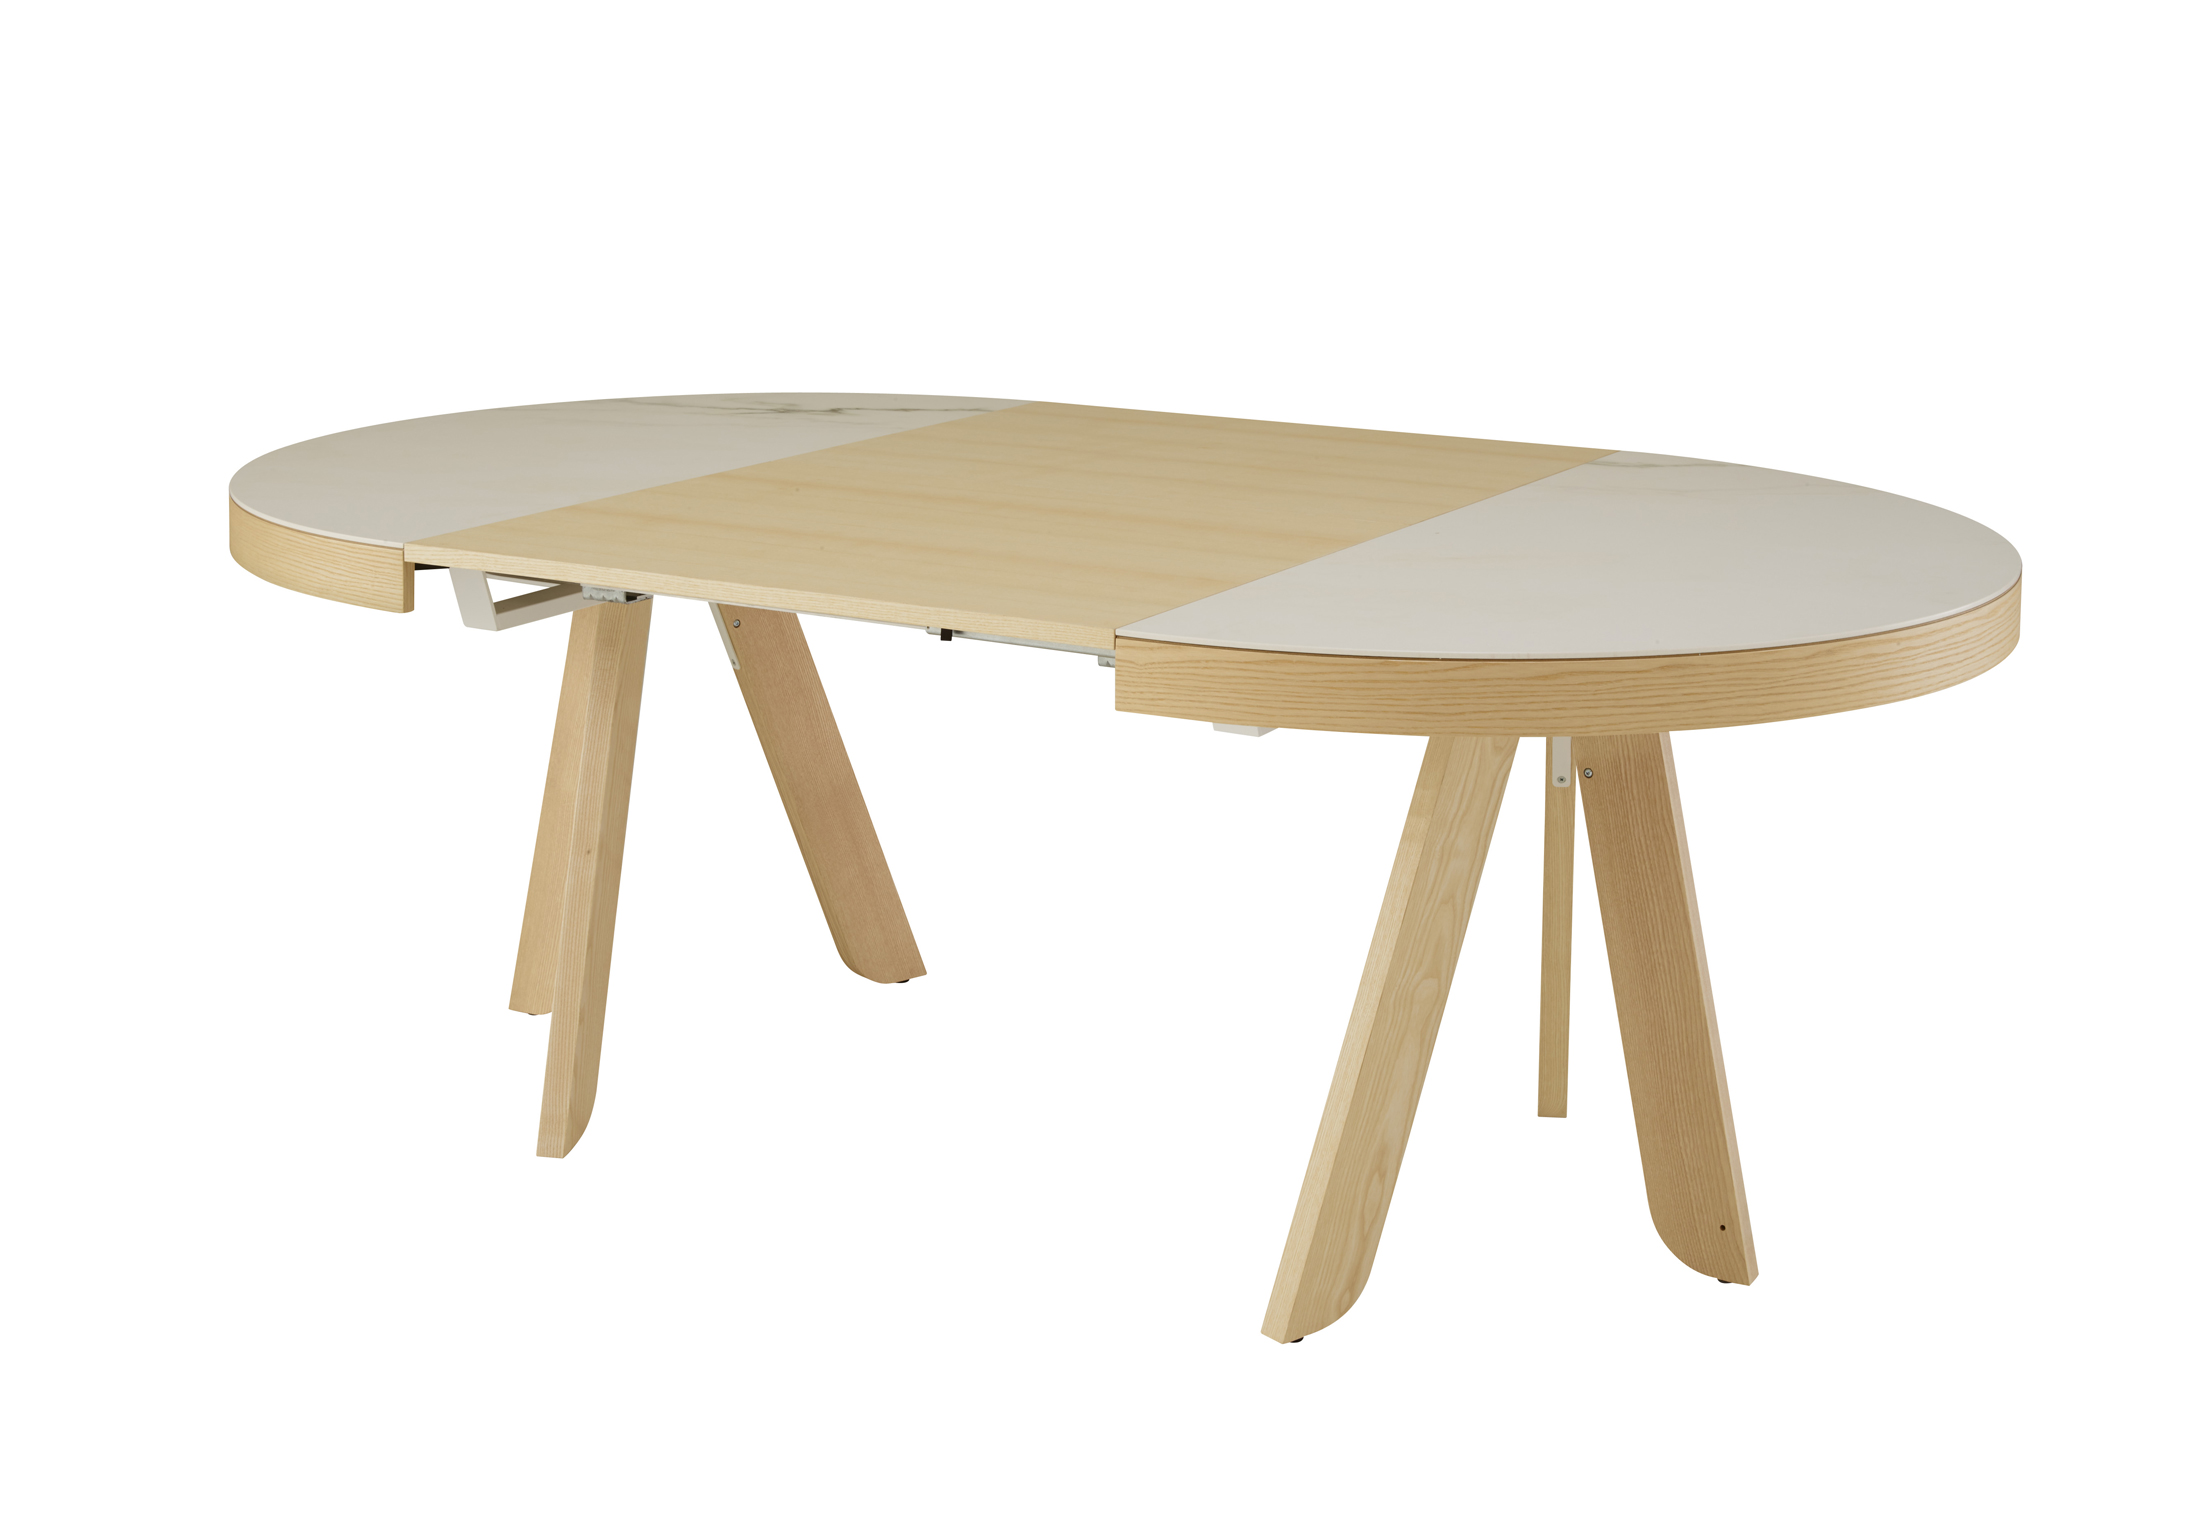 Satori dining table by delo lindo for ligne roset for Table yoyo ligne roset